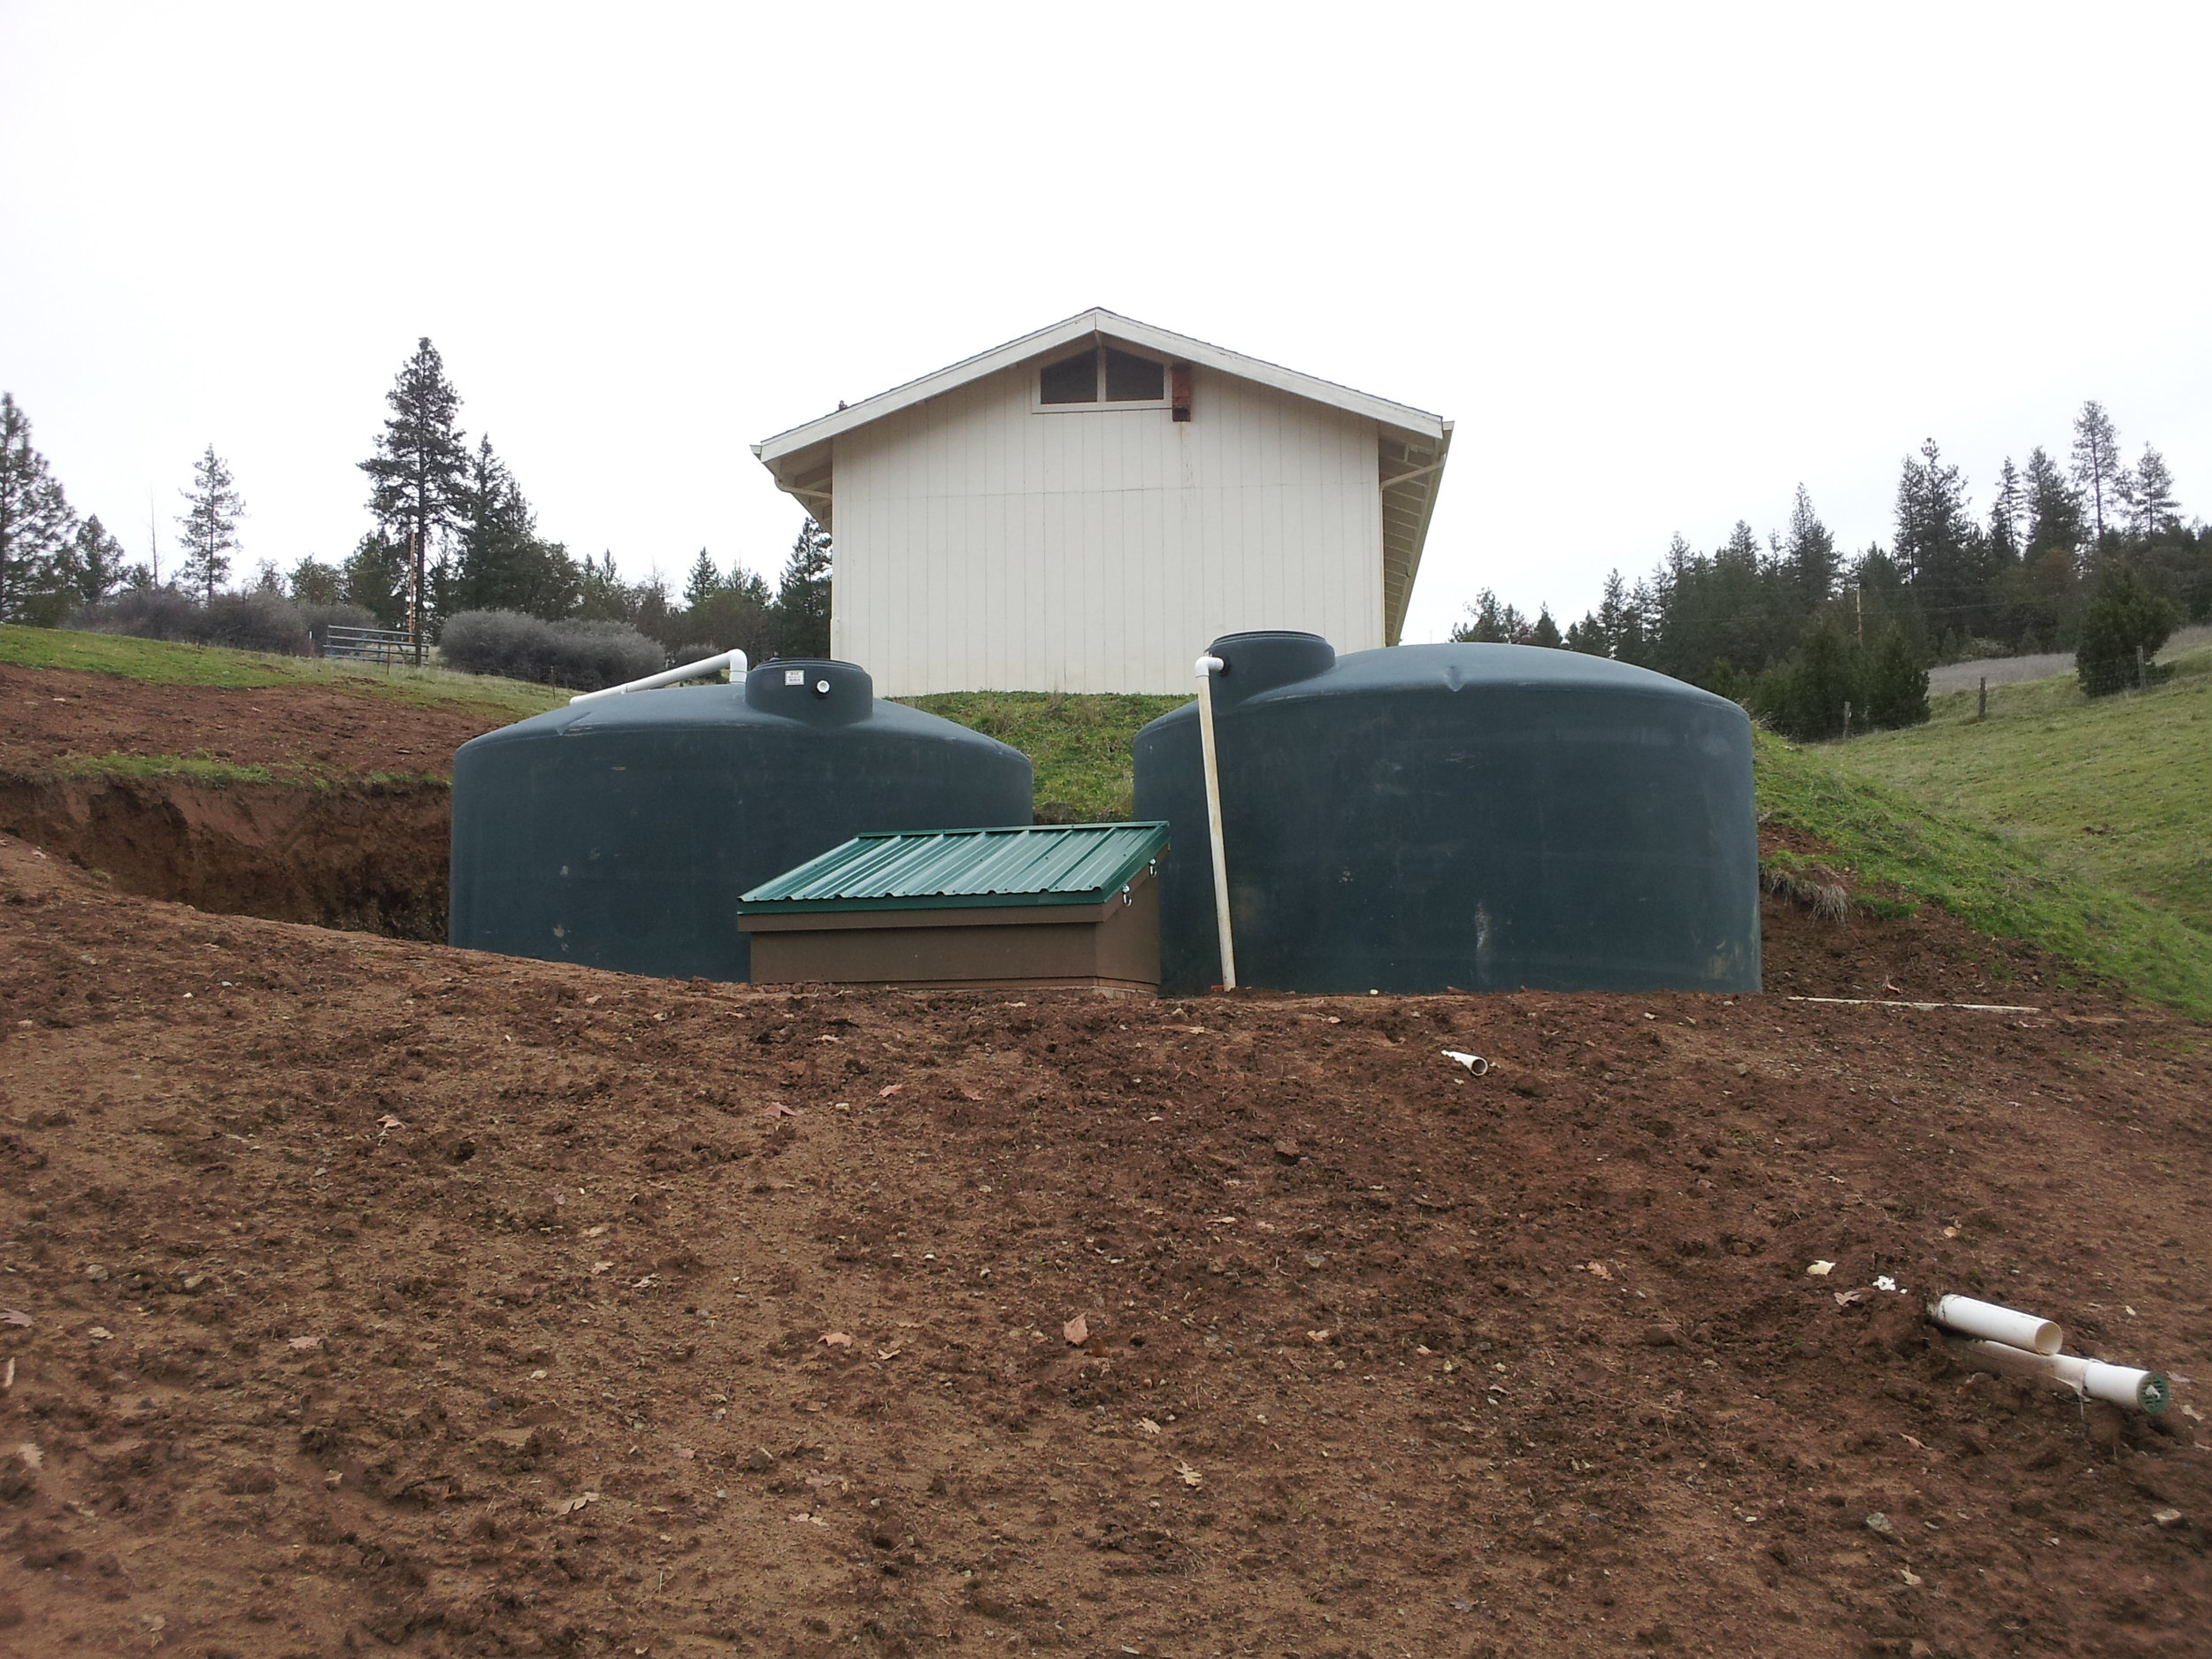 10,000 gallon system collects water from barn roof.  Pump house protects pump and pressure tank.